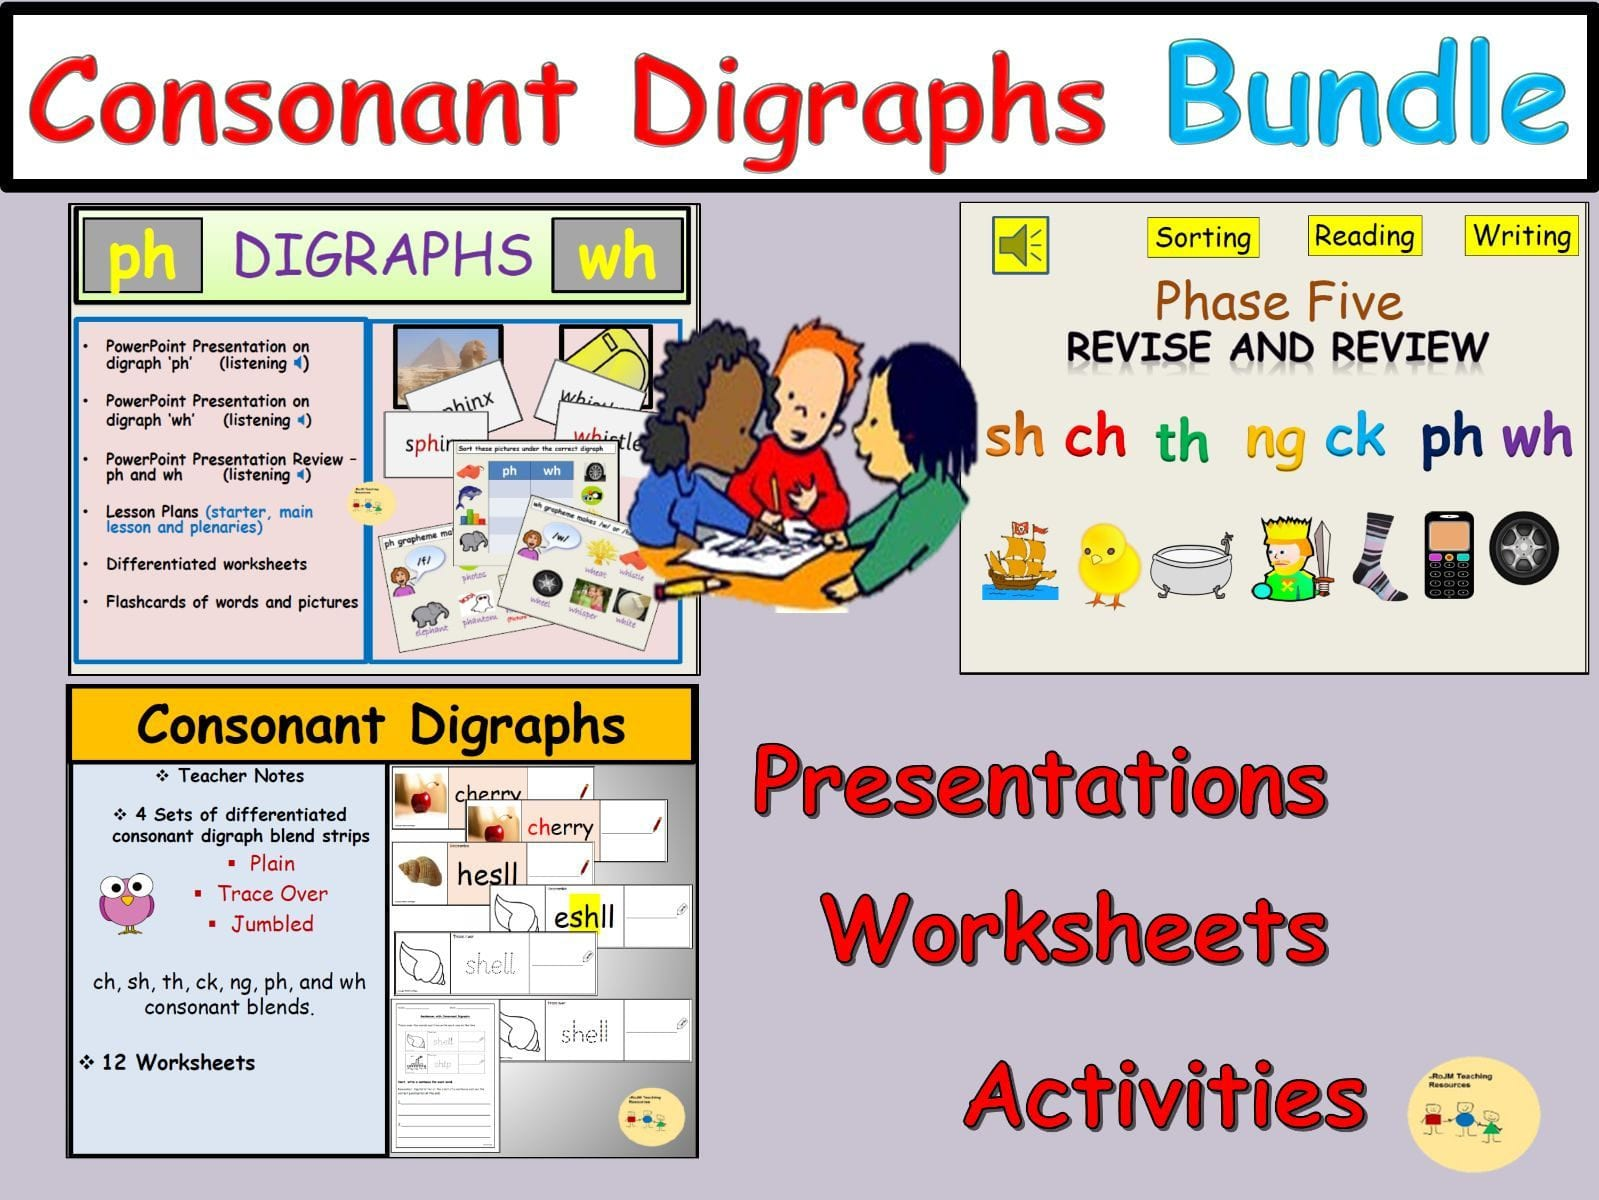 hight resolution of Consonant Digraph Worksheet   Printable Worksheets and Activities for  Teachers